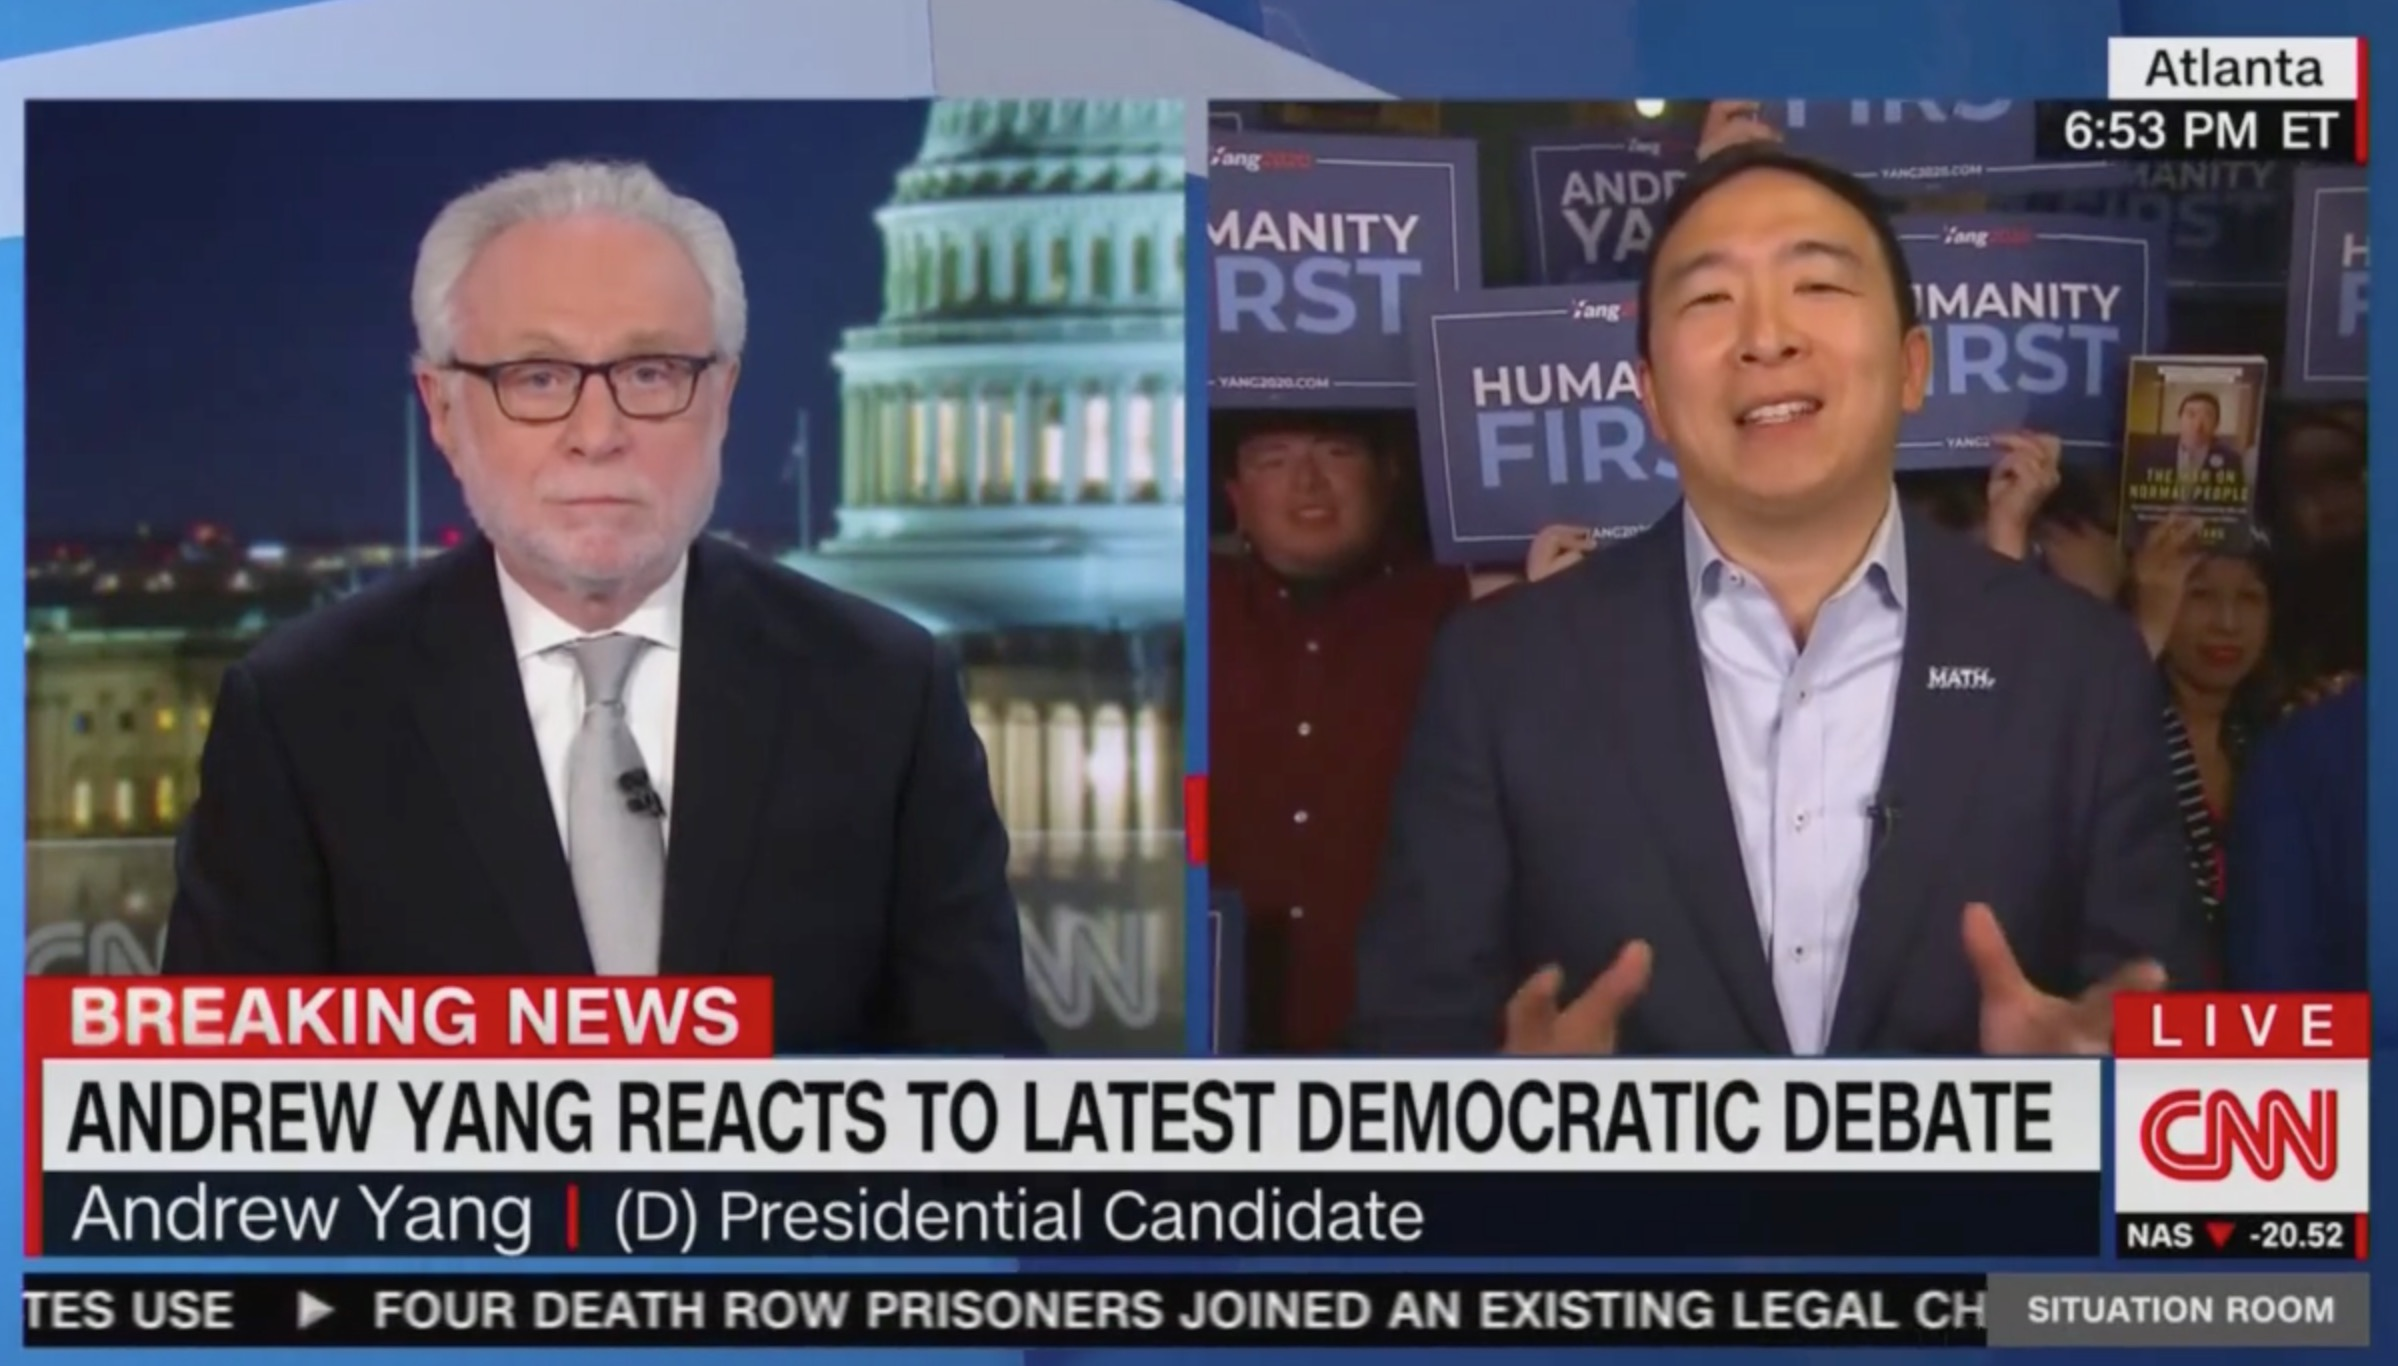 Andrew Yang Blasts MSNBC to Wolf Blitzer: 'All I'll Say is I Miss CNN Moderating the Debates!'